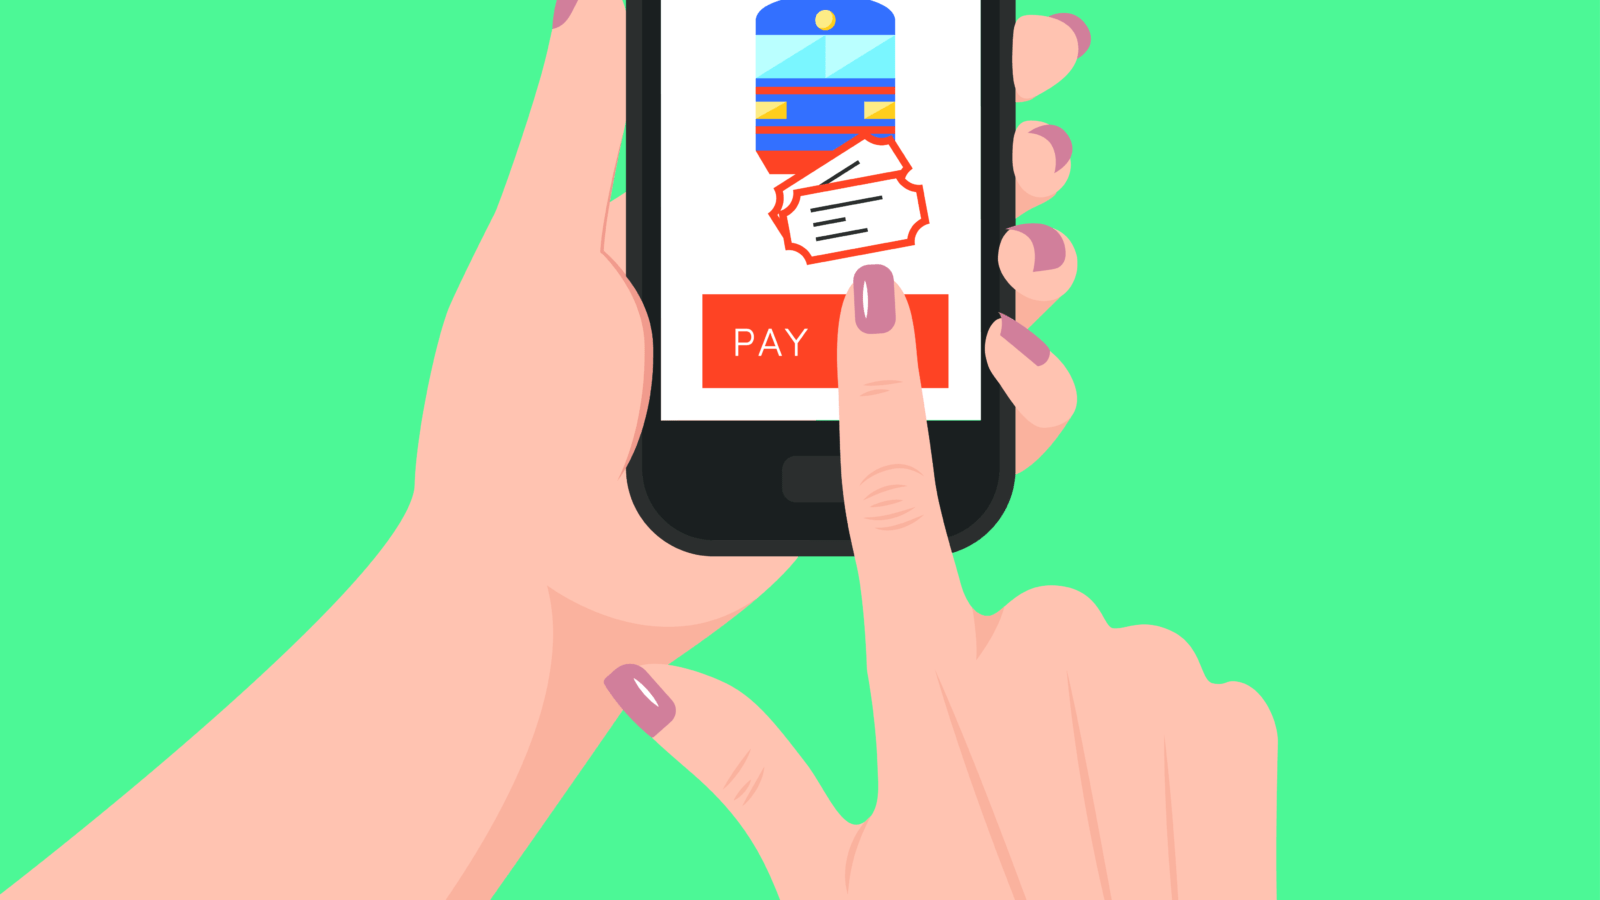 Women's hands holding smartphone and buying train tickets online. Mobile payment concept, vector.